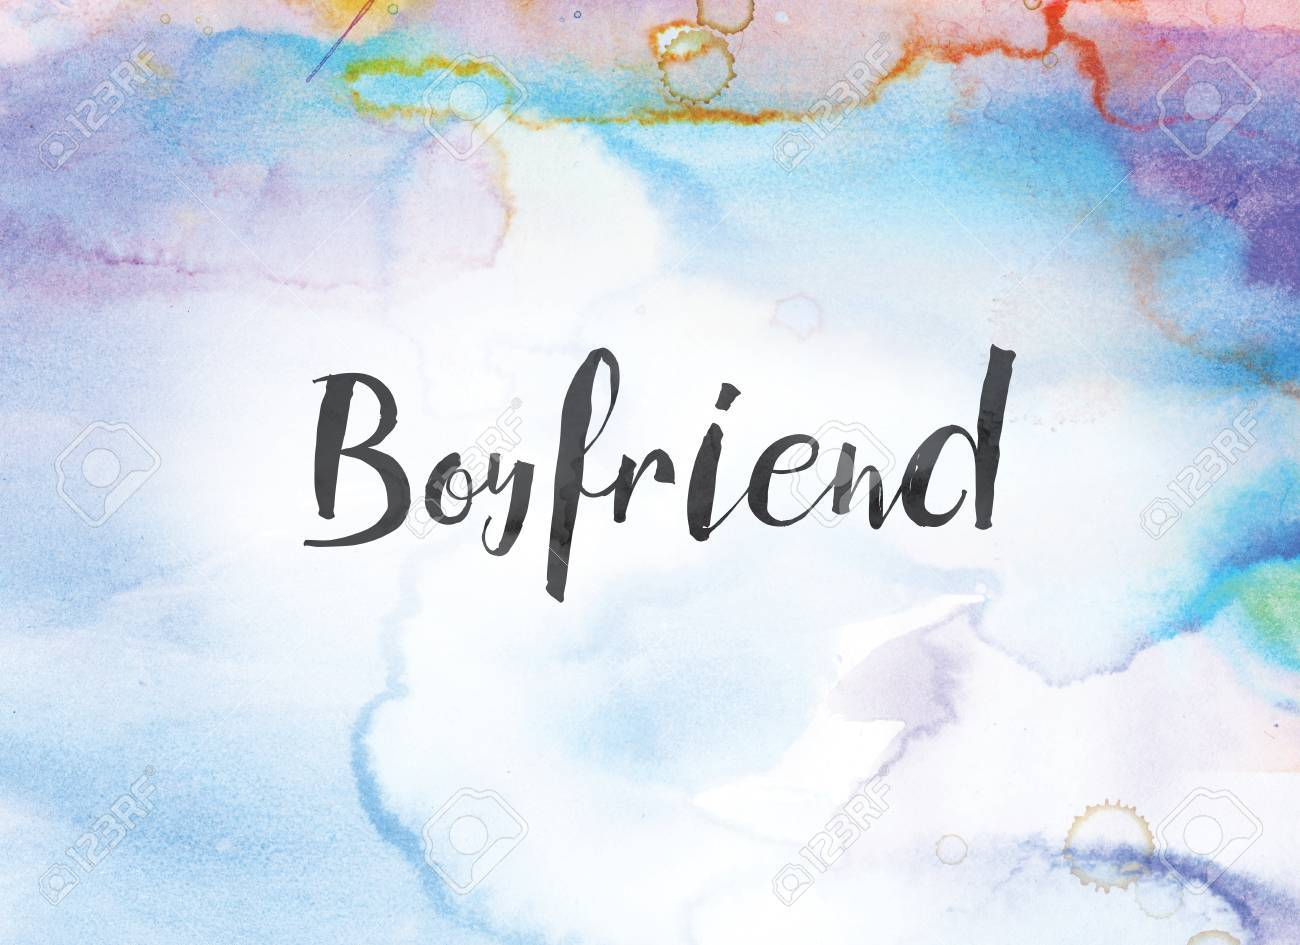 The Word Boyfriend Concept And Theme Written In Black Ink On Stock